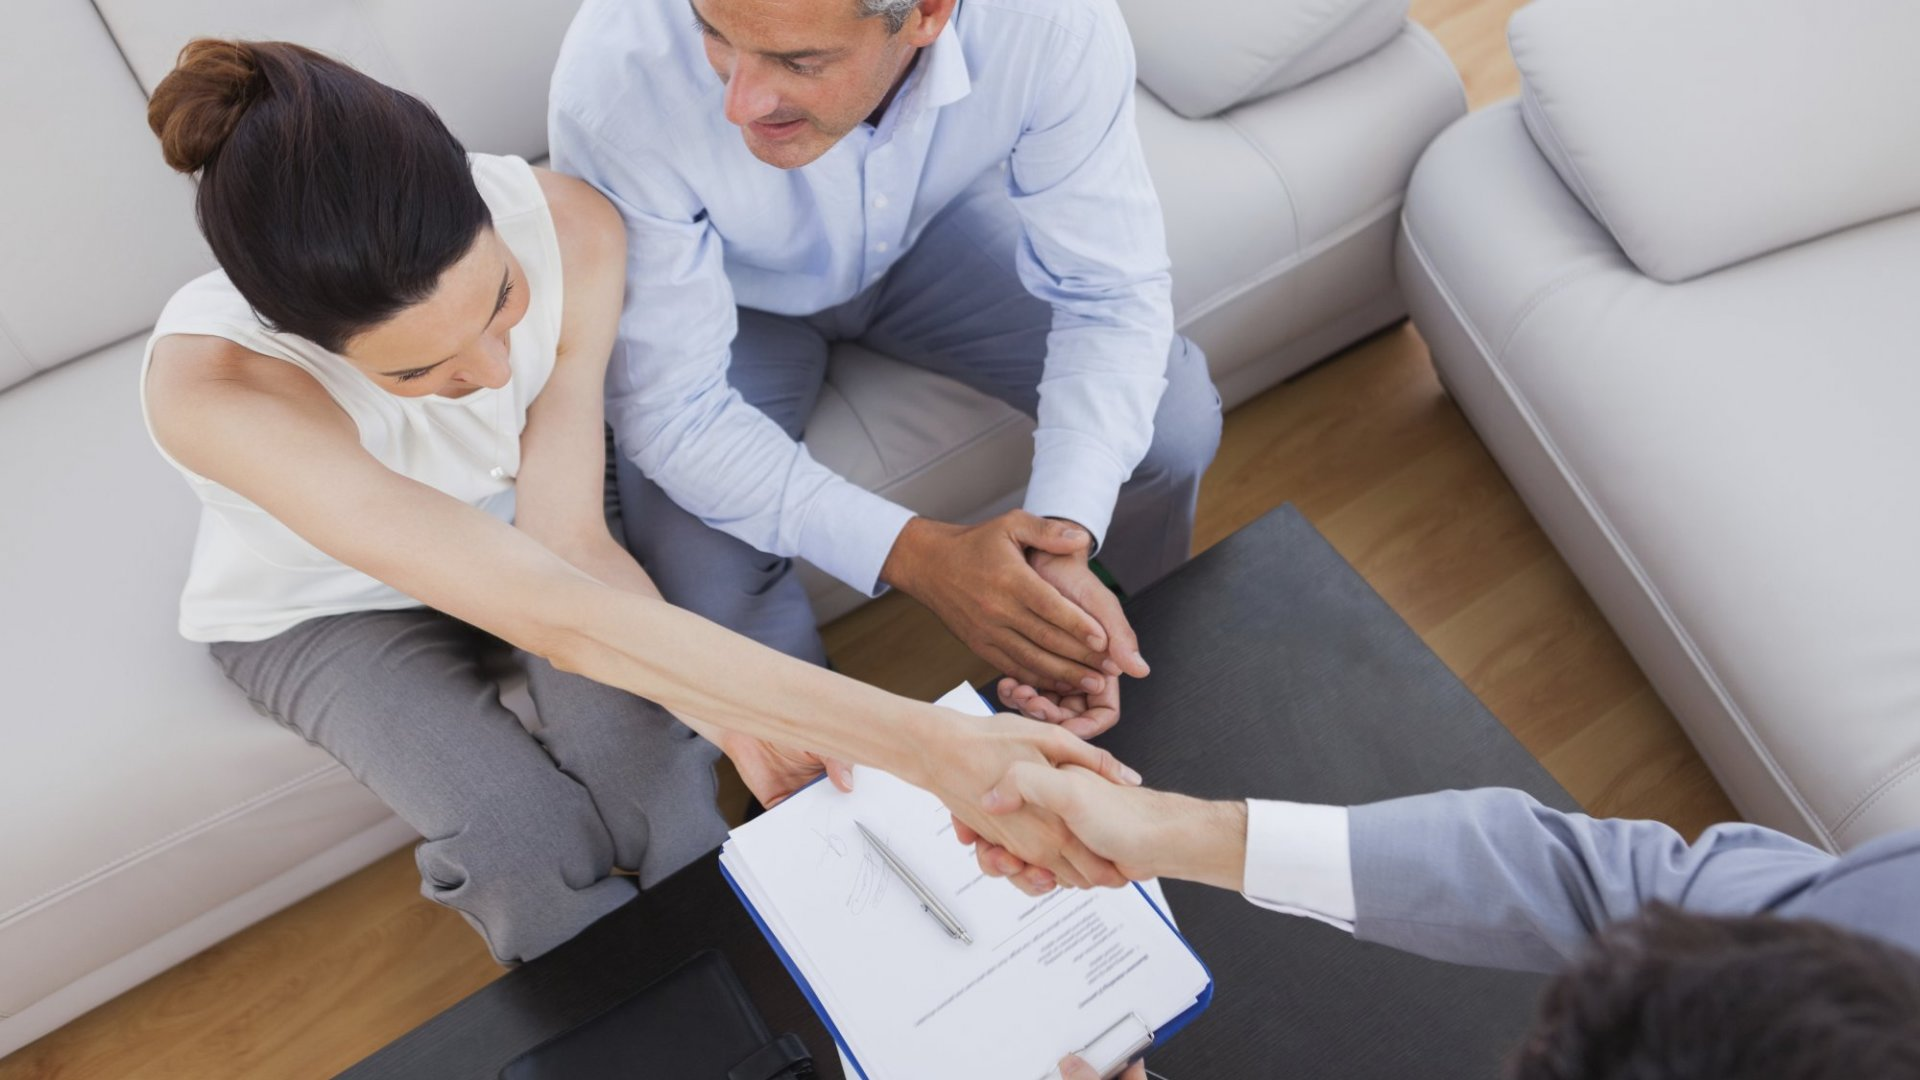 1 Unexpected Question That Can Close Any Sale